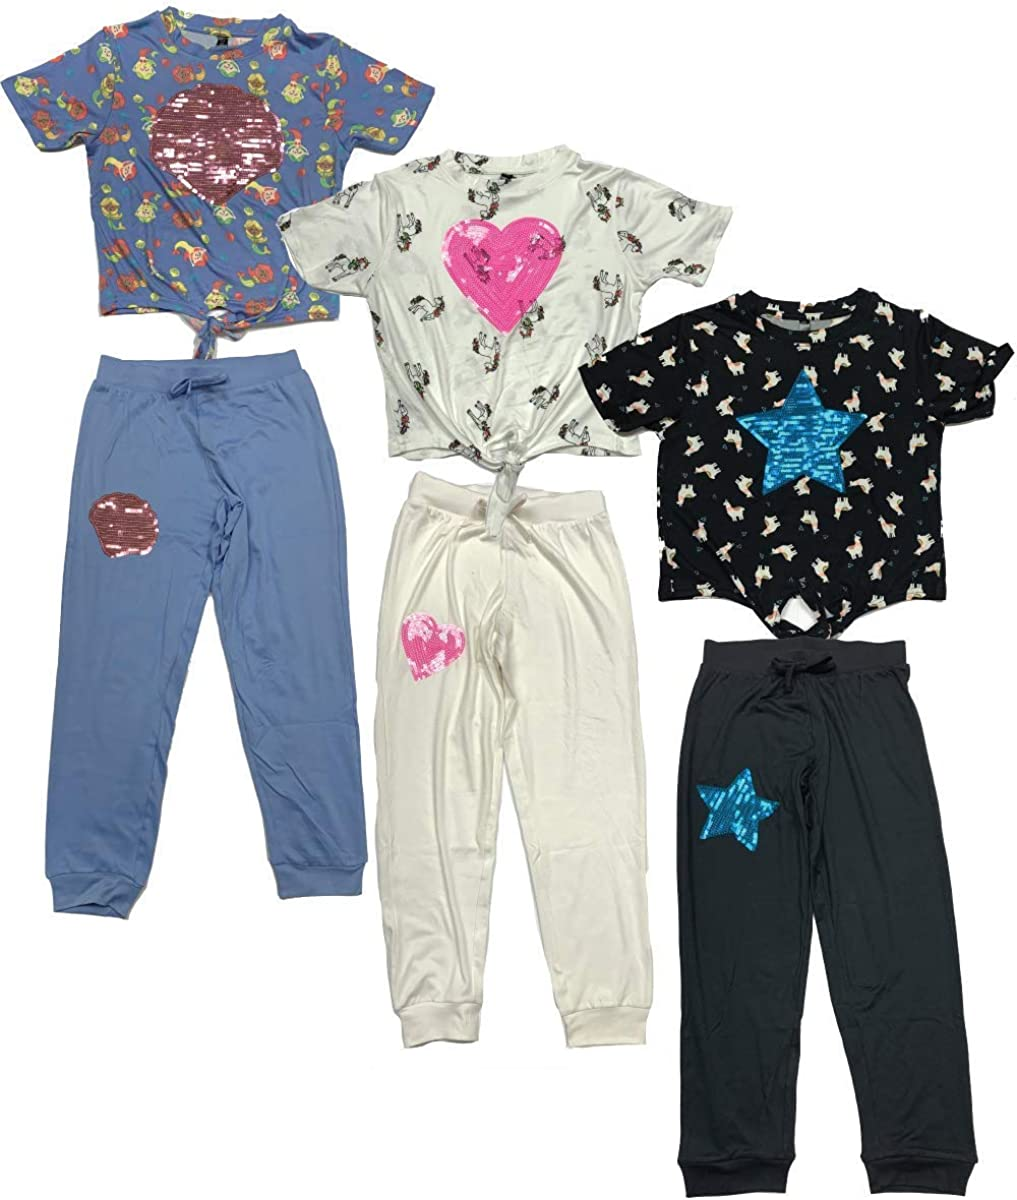 MISS POPULAR 6-Piece Set Girls Kids Sequins Applique Short Sleeve Tie Front T-Shirt with Jogger Pants Size 7-16: Clothing